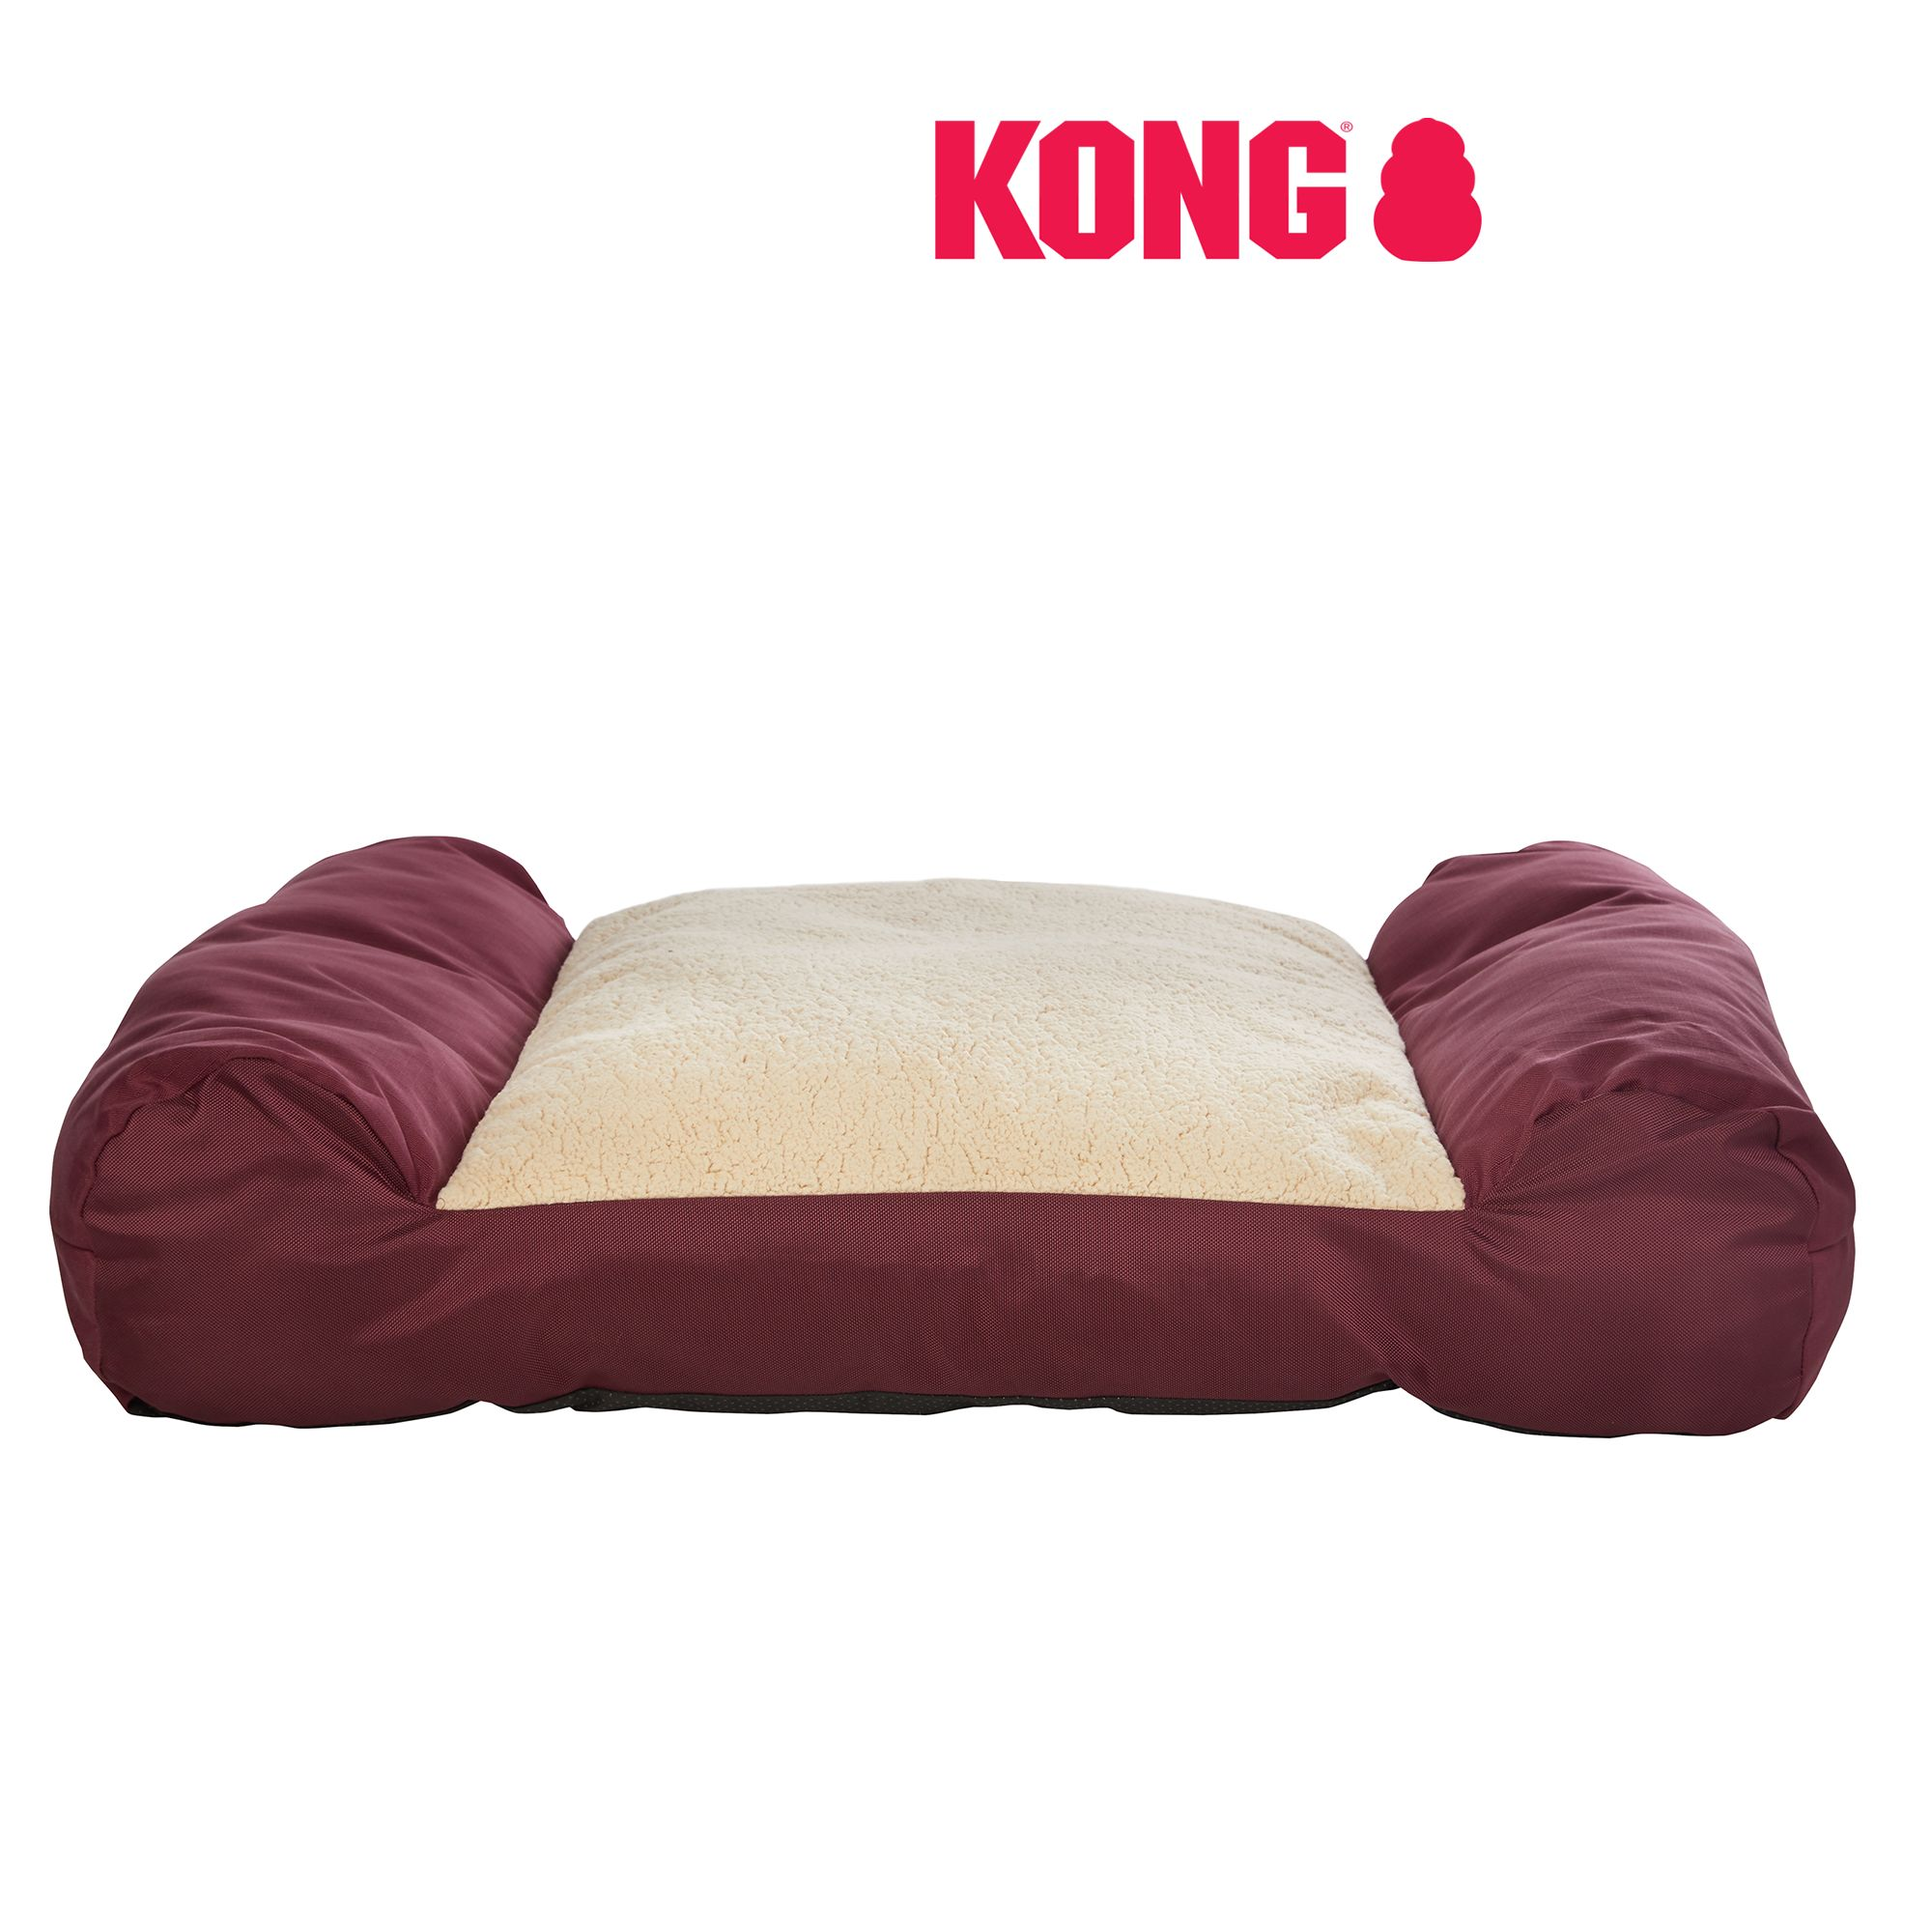 Picture of: Kong Lounger Dog Bed Large Dog Beds Pillows Petsmart